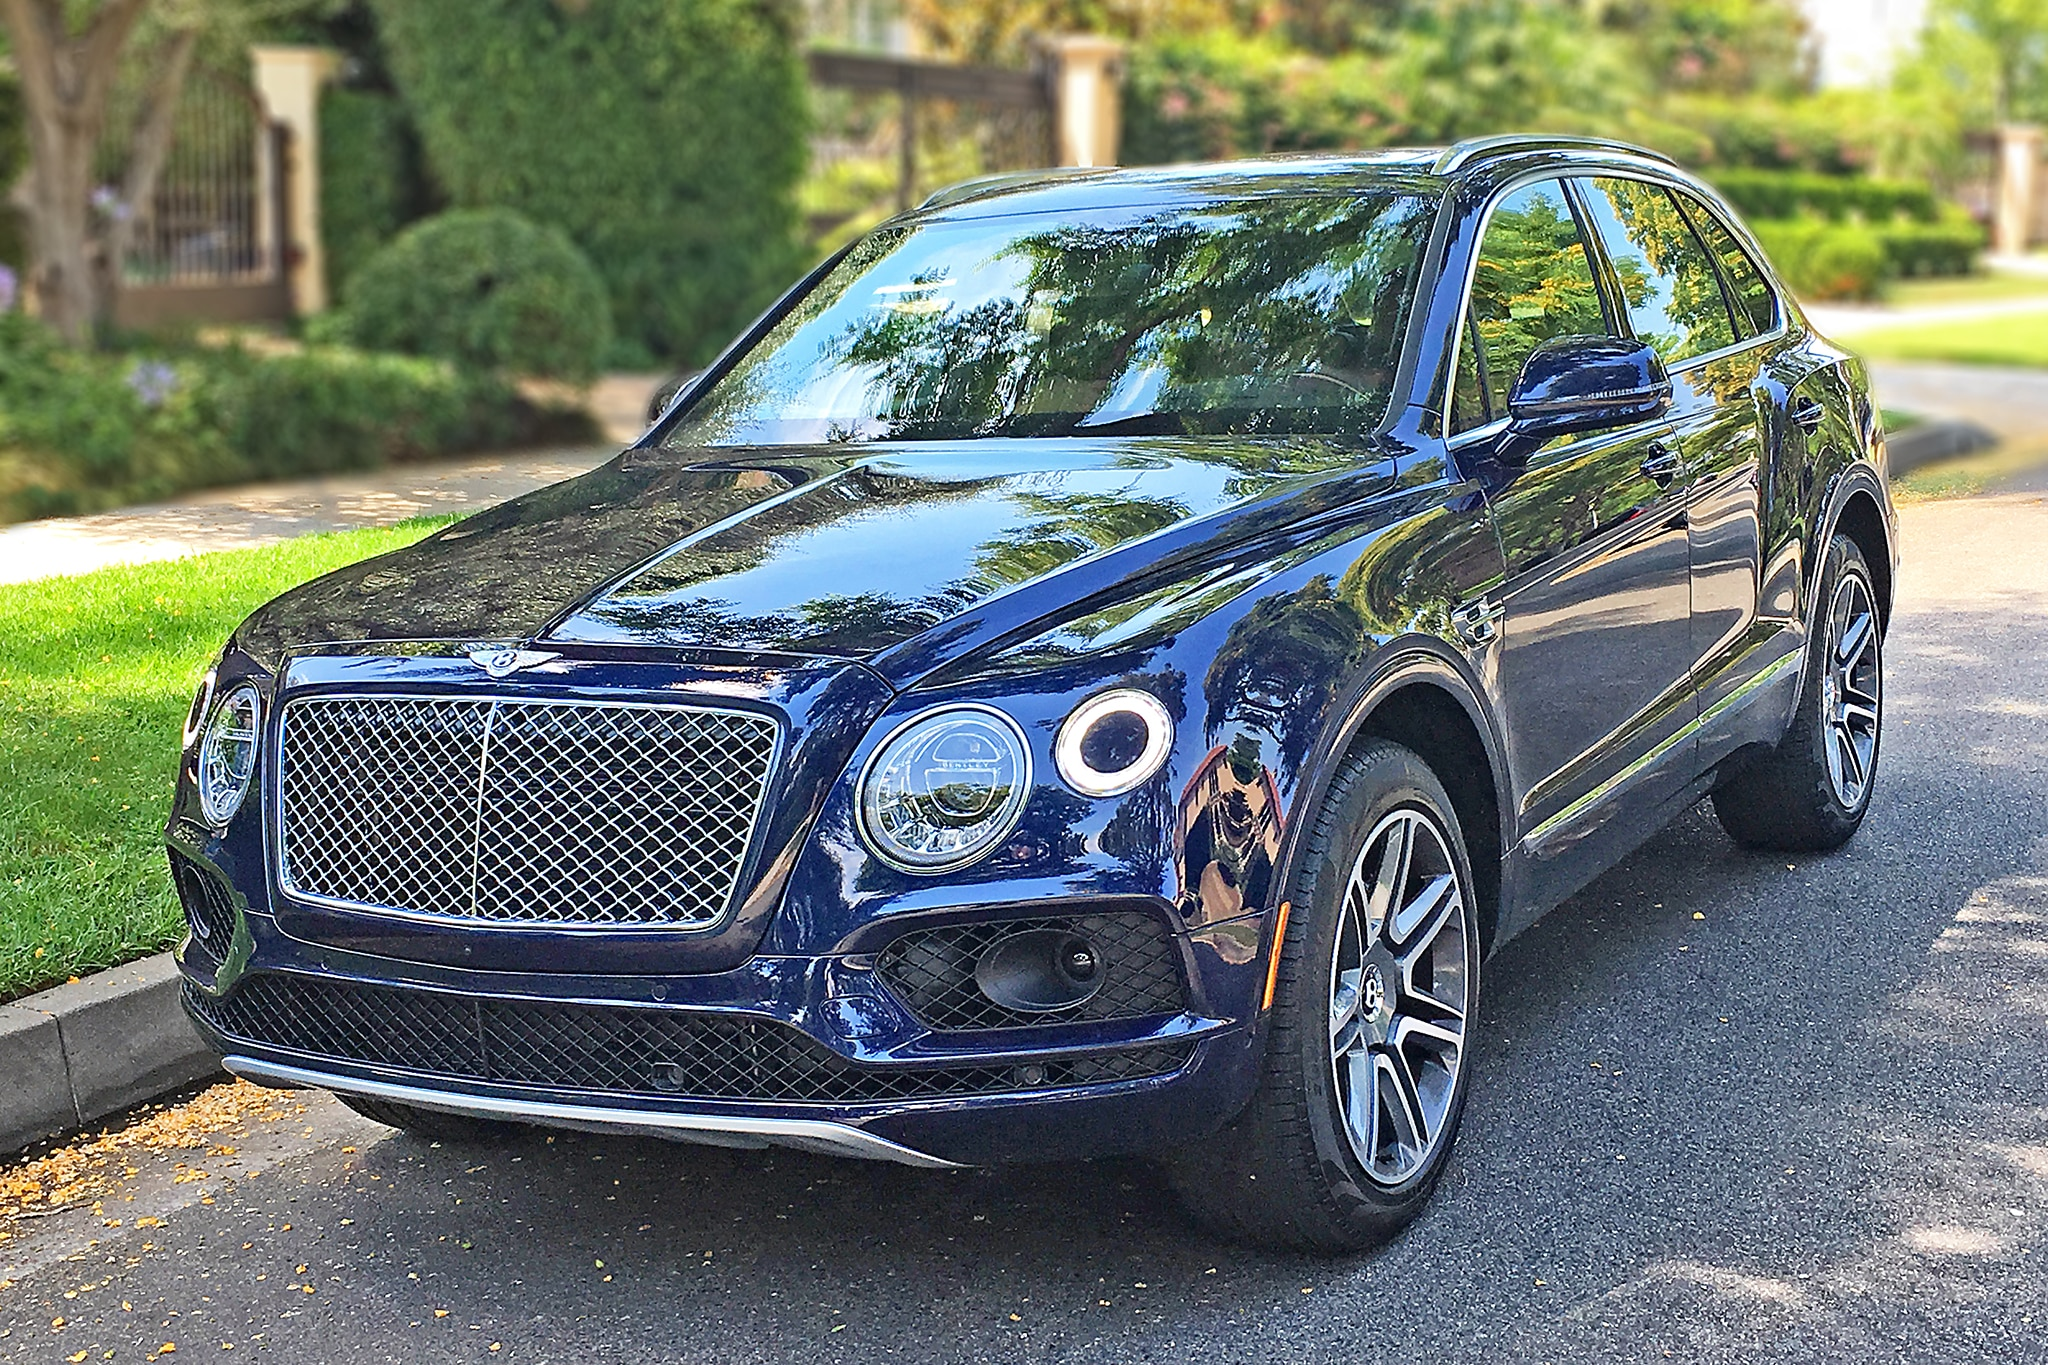 bentley continental gt gumtree with Baby Blue Bentley on 1188342141 moreover New Saab Cars For Sale Dan Saab Convertible Cars For Sale Uk moreover 2017 Toyota Rv4 besides Bentley Green additionally Dpe Wheels For Sale.